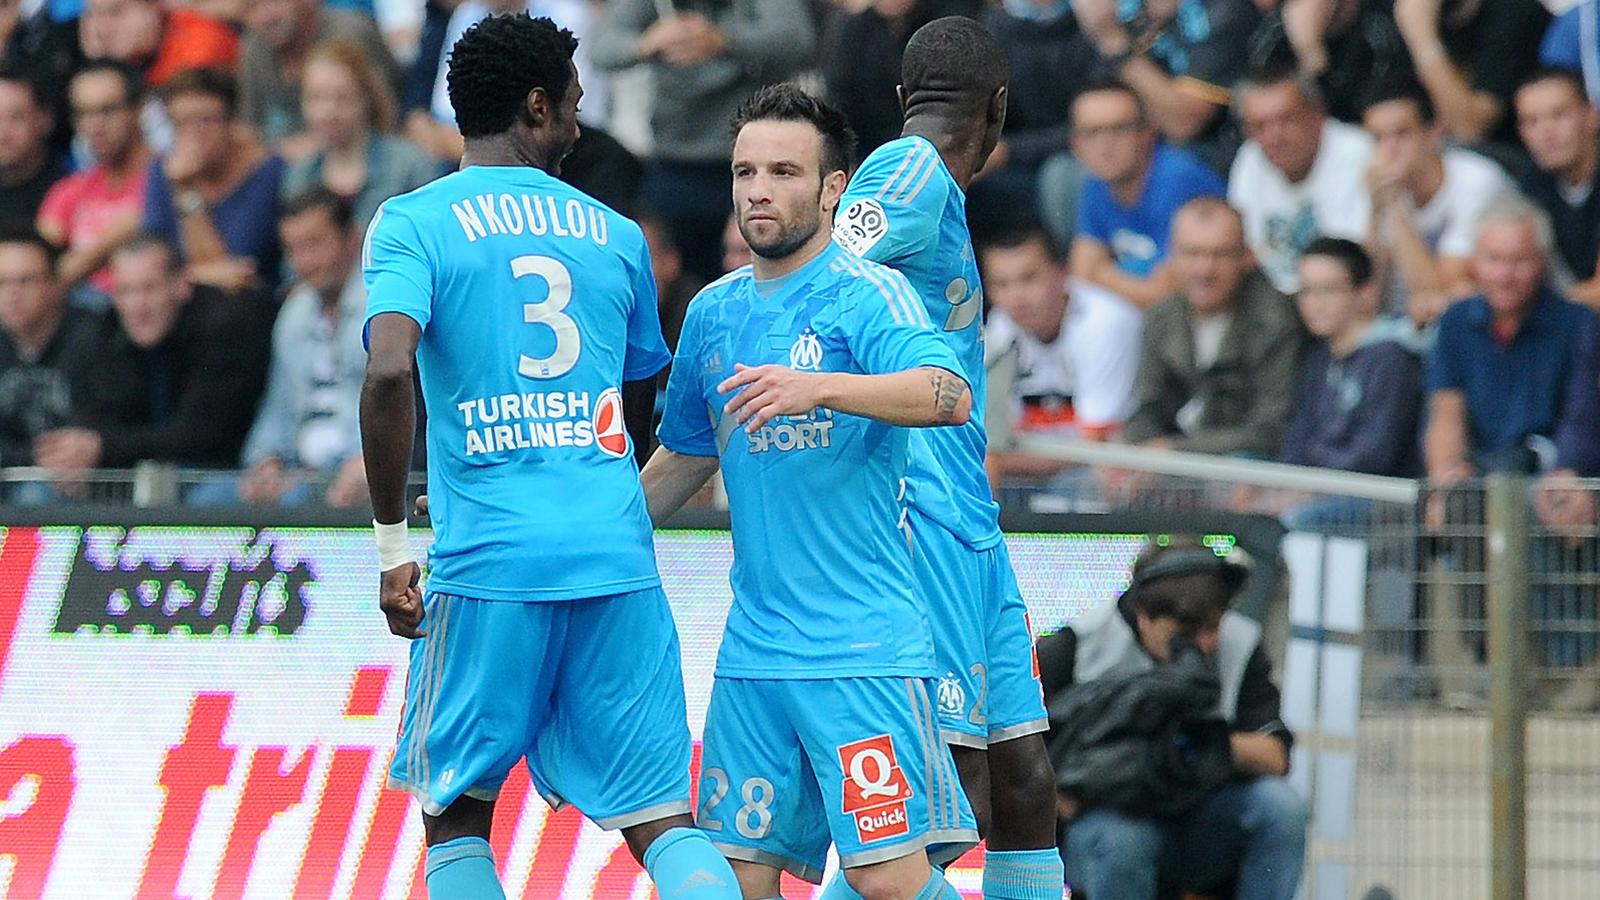 OM - Match Olympique de Marseille - Willem II en direct live streaming